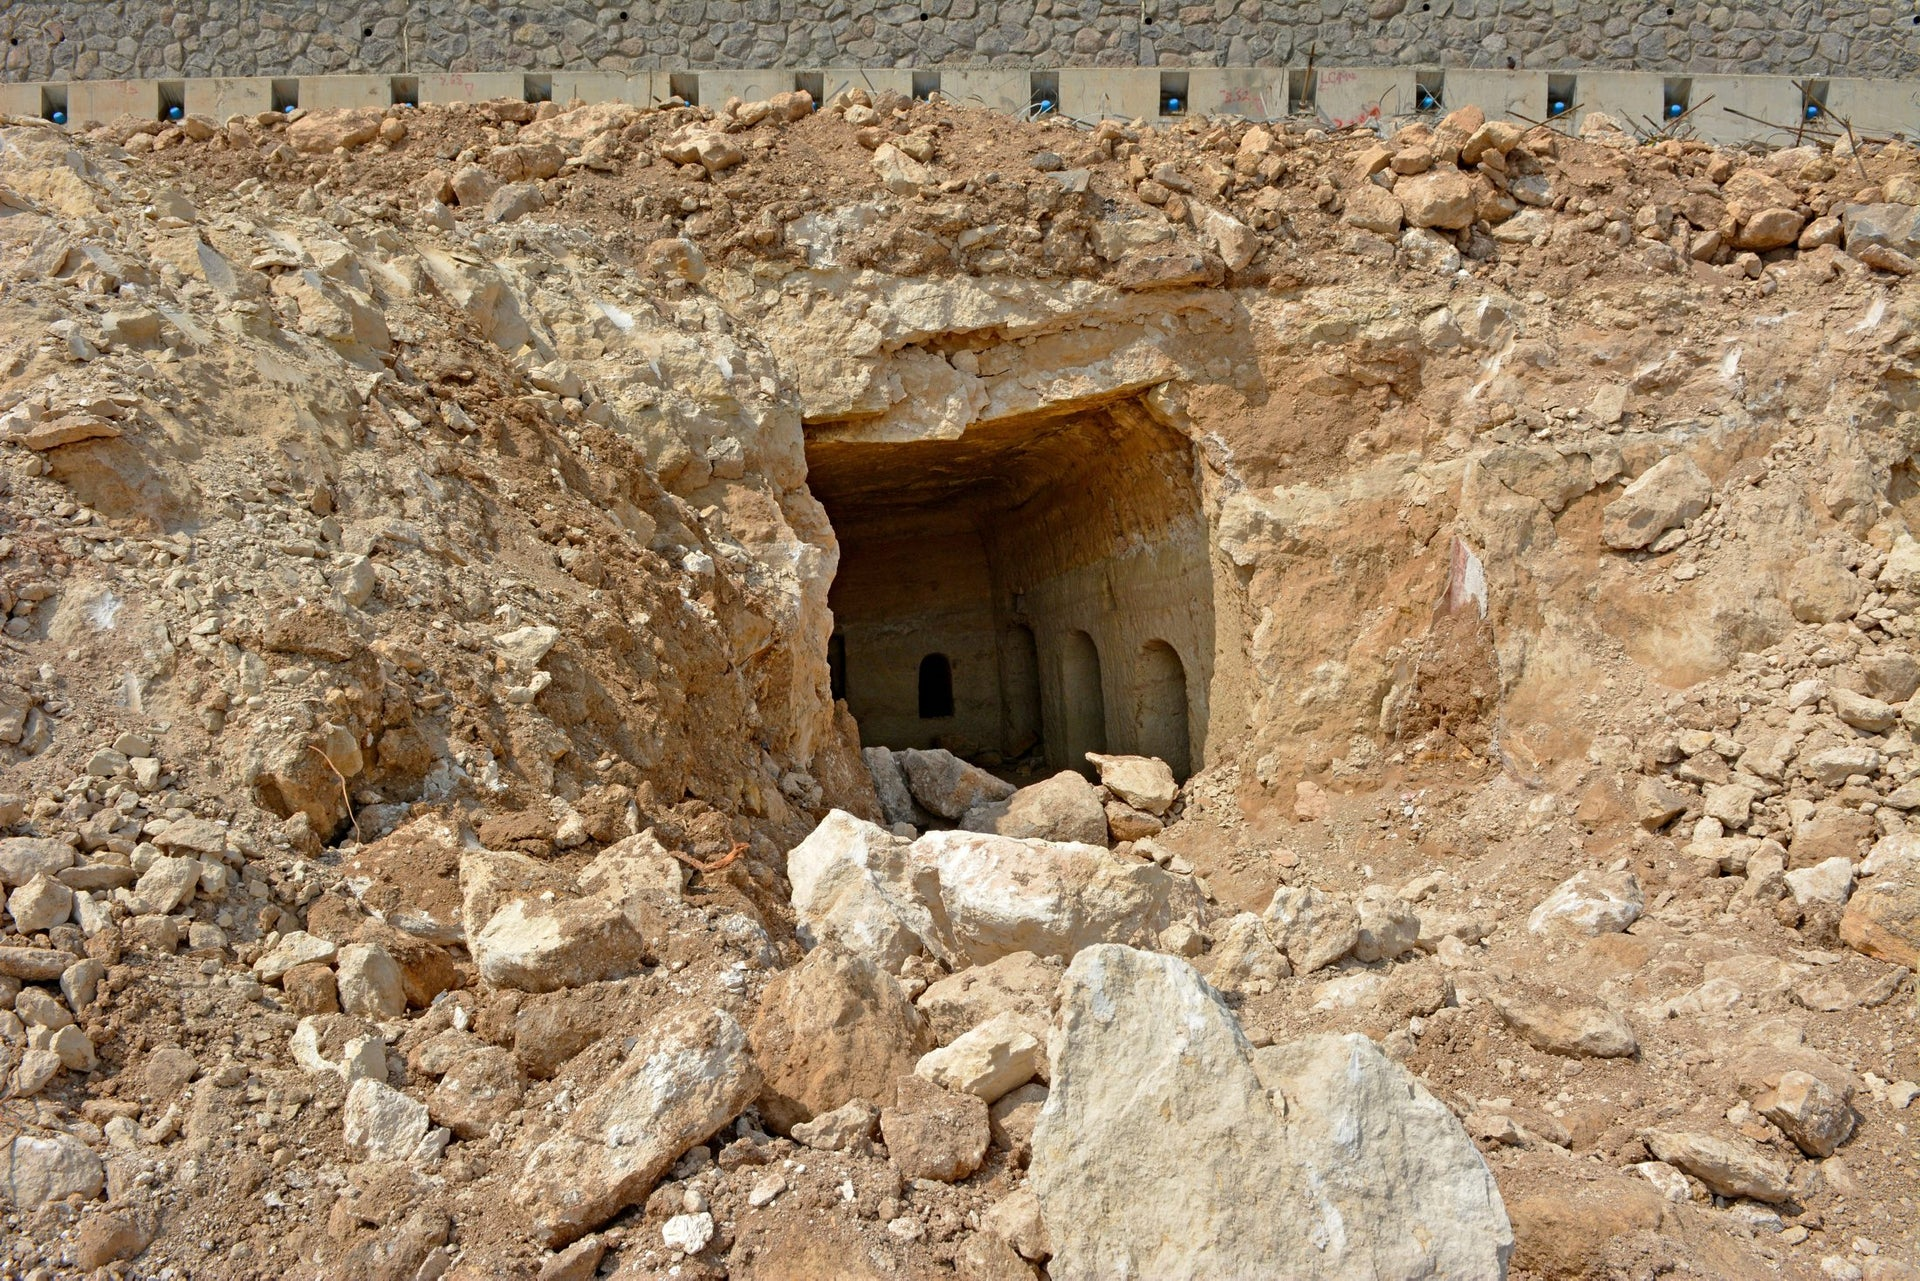 And there it was: Jewish catacomb found in Tiberias. Picture shows the entrance serendipitously found by a bulldozer.